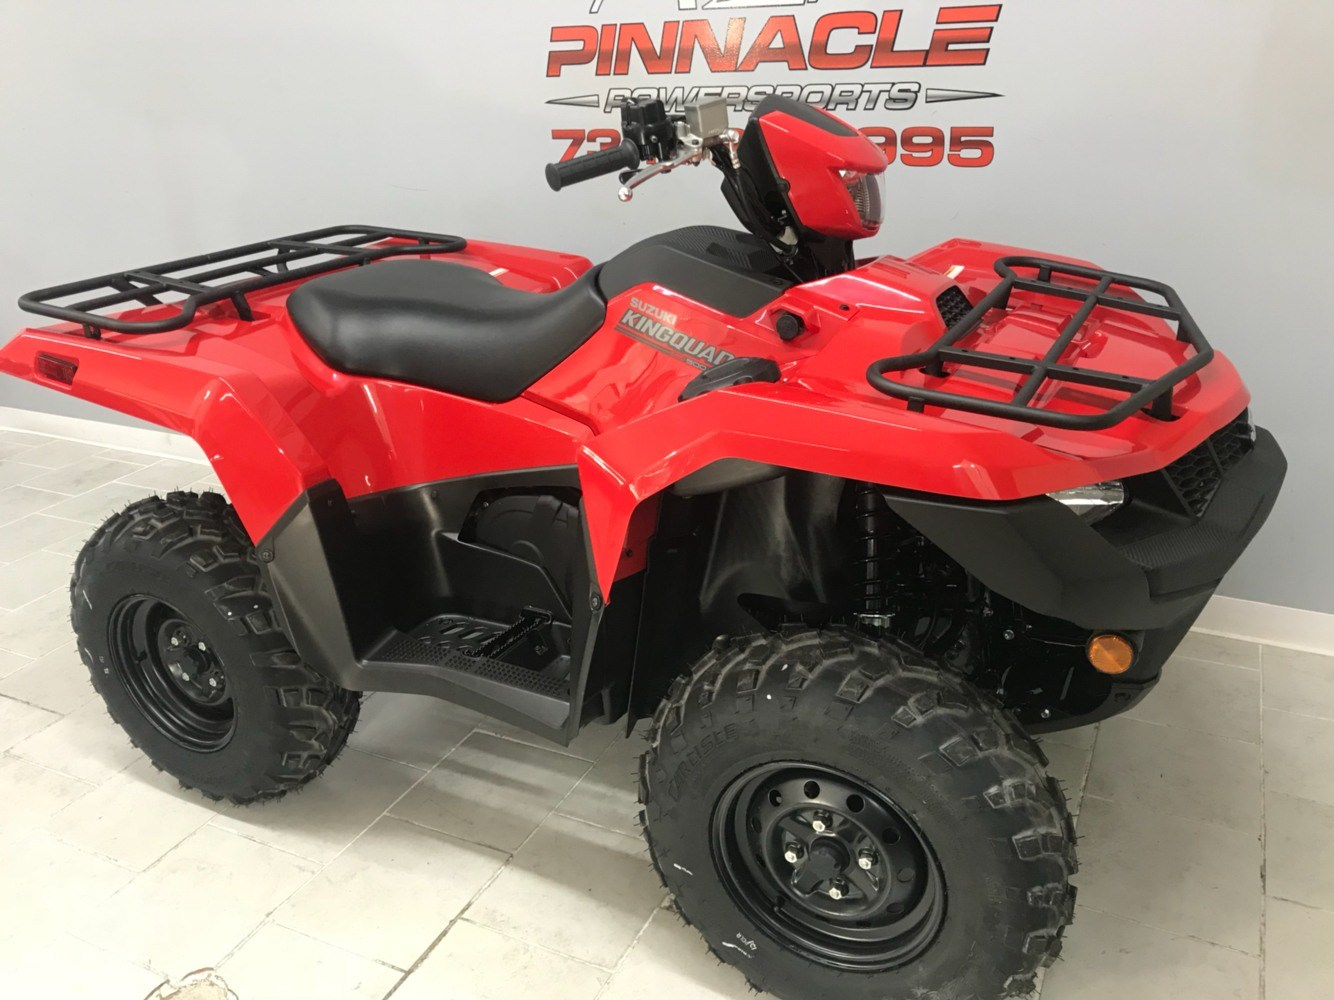 2019 Suzuki KingQuad 750AXi in Belleville, Michigan - Photo 2